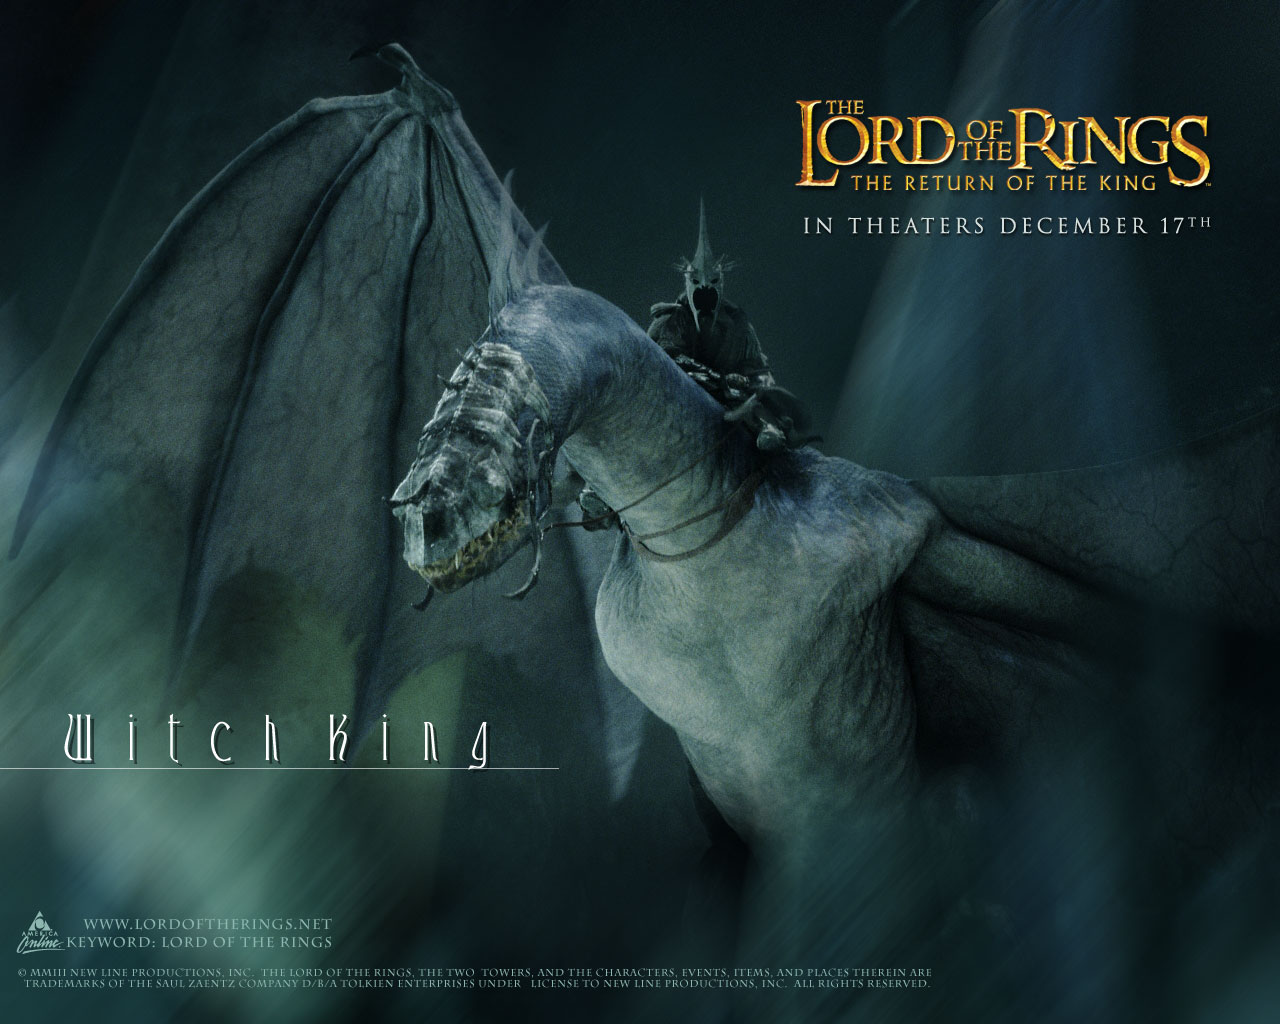 Lord of the rings wallpapers 1280x1024